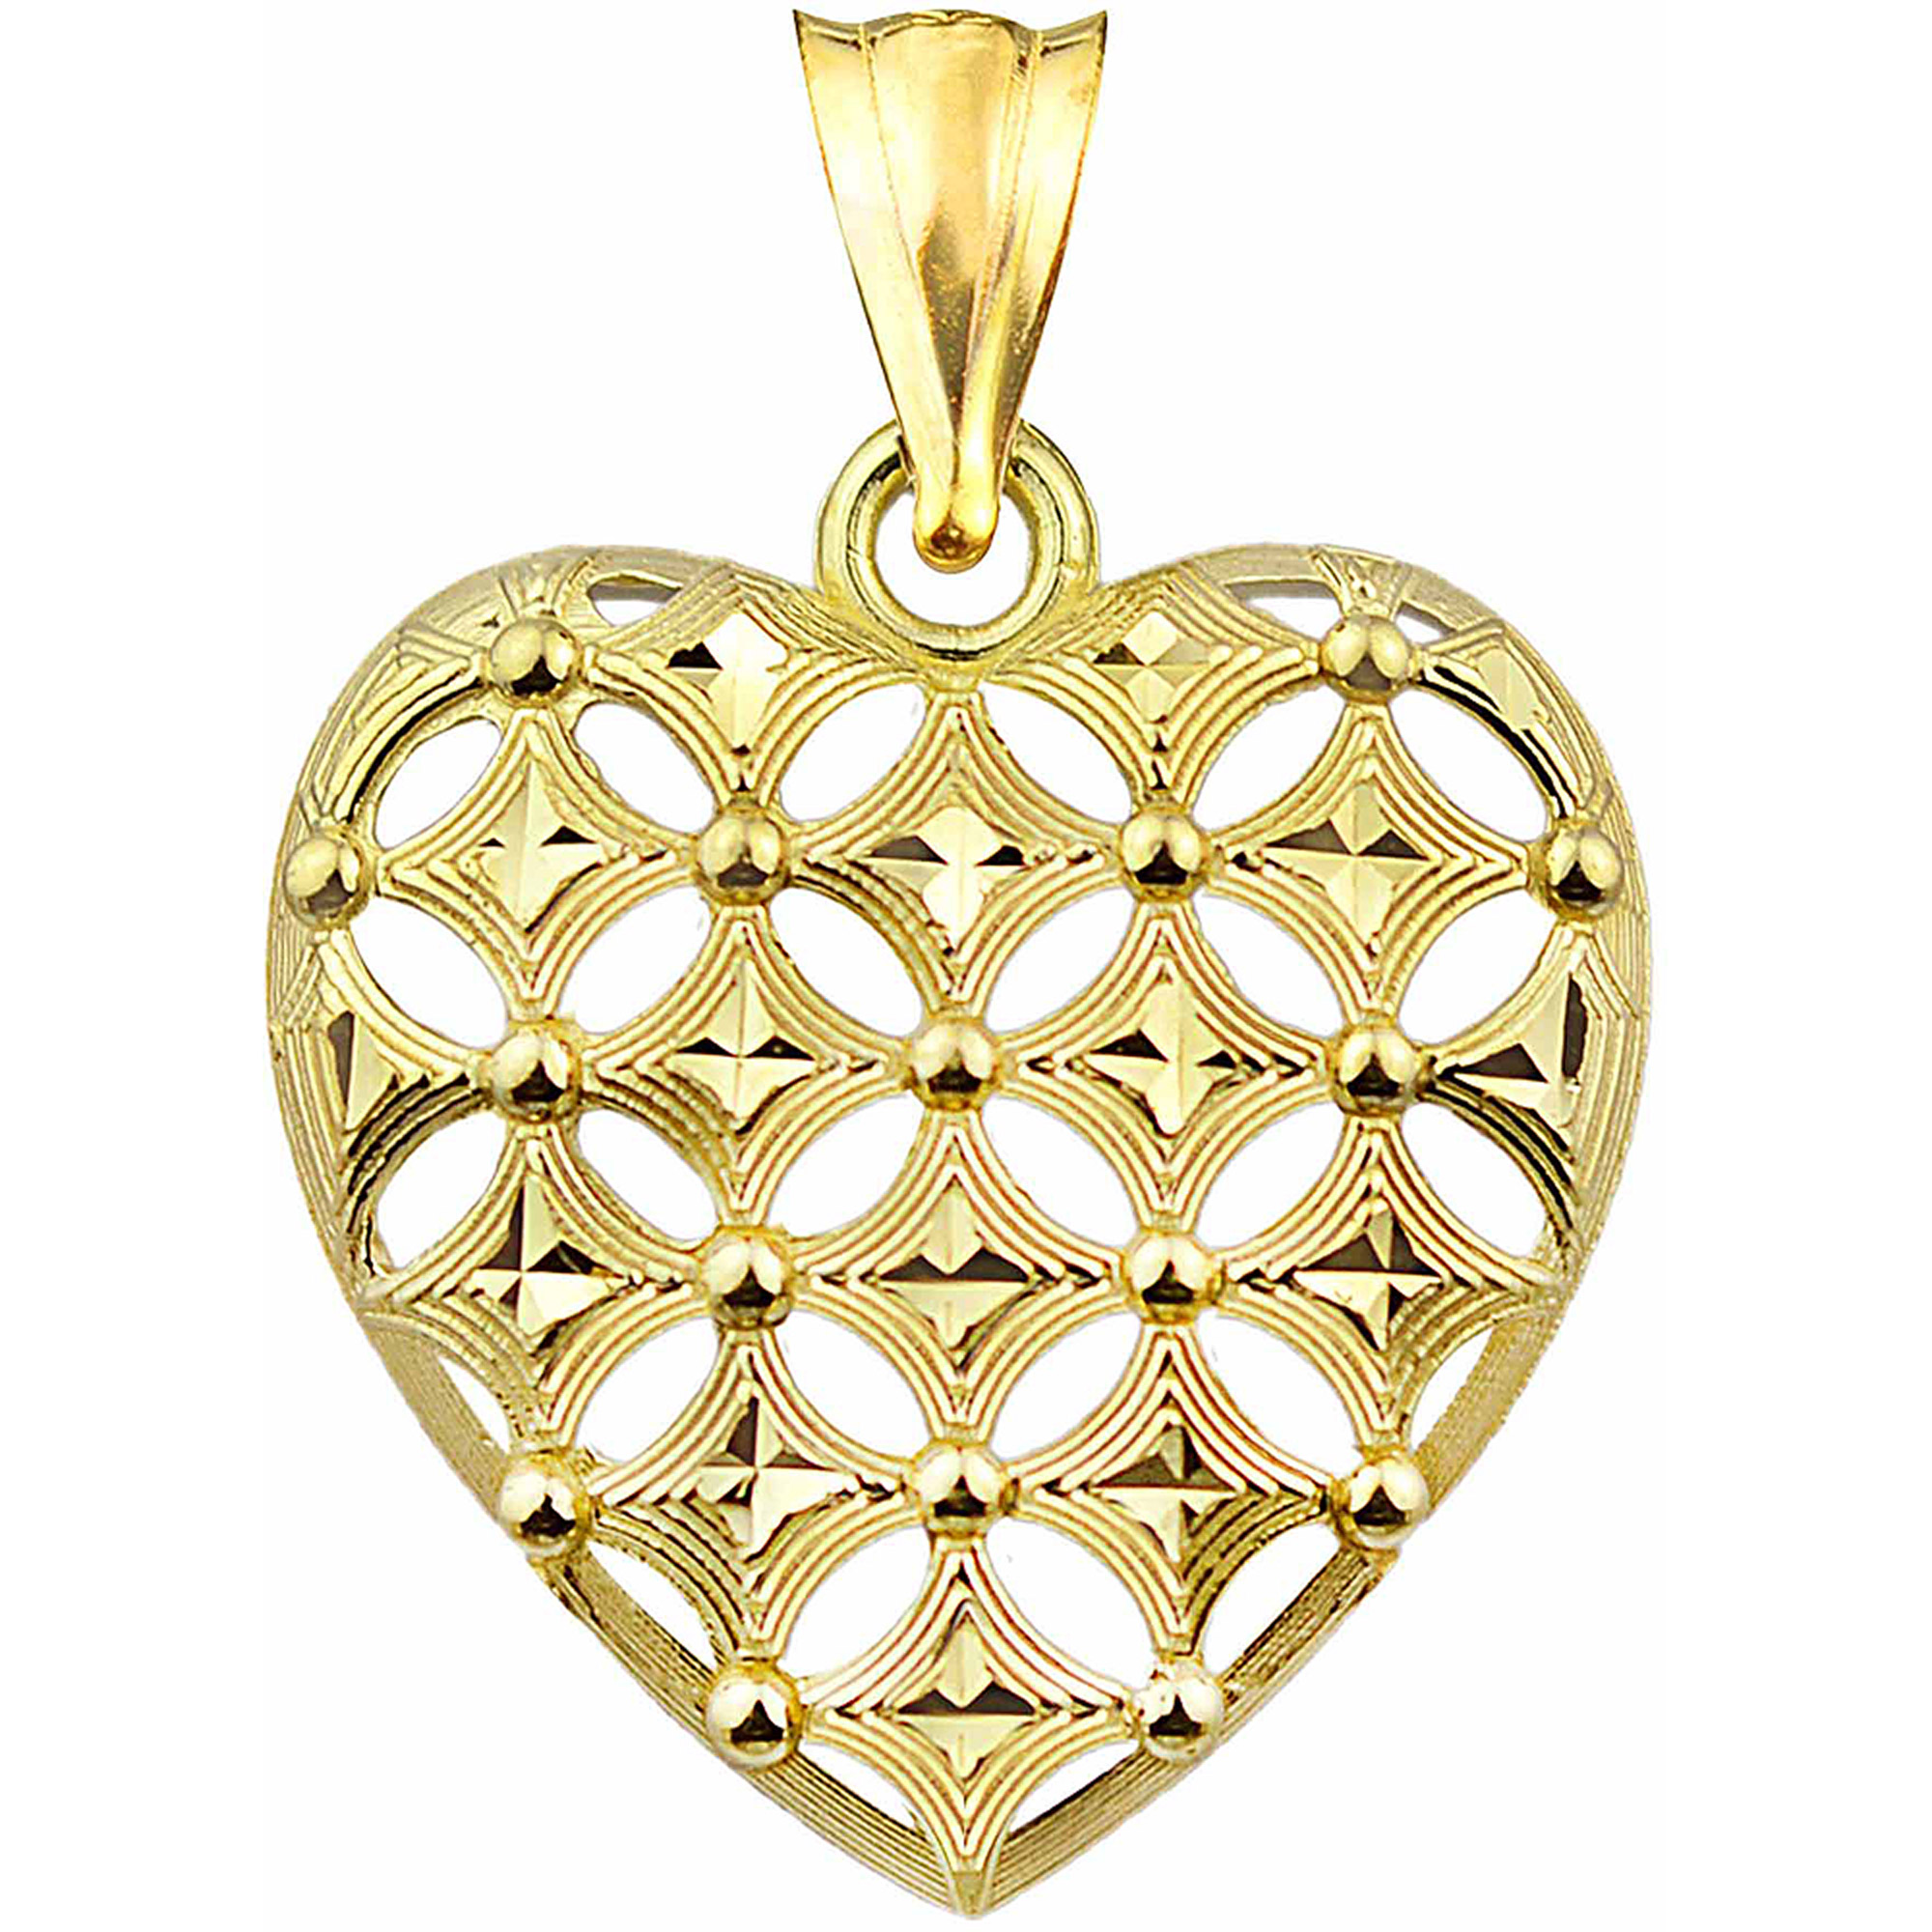 US GOLD 10kt Gold Diamond-Cut Heart Charm Pendant